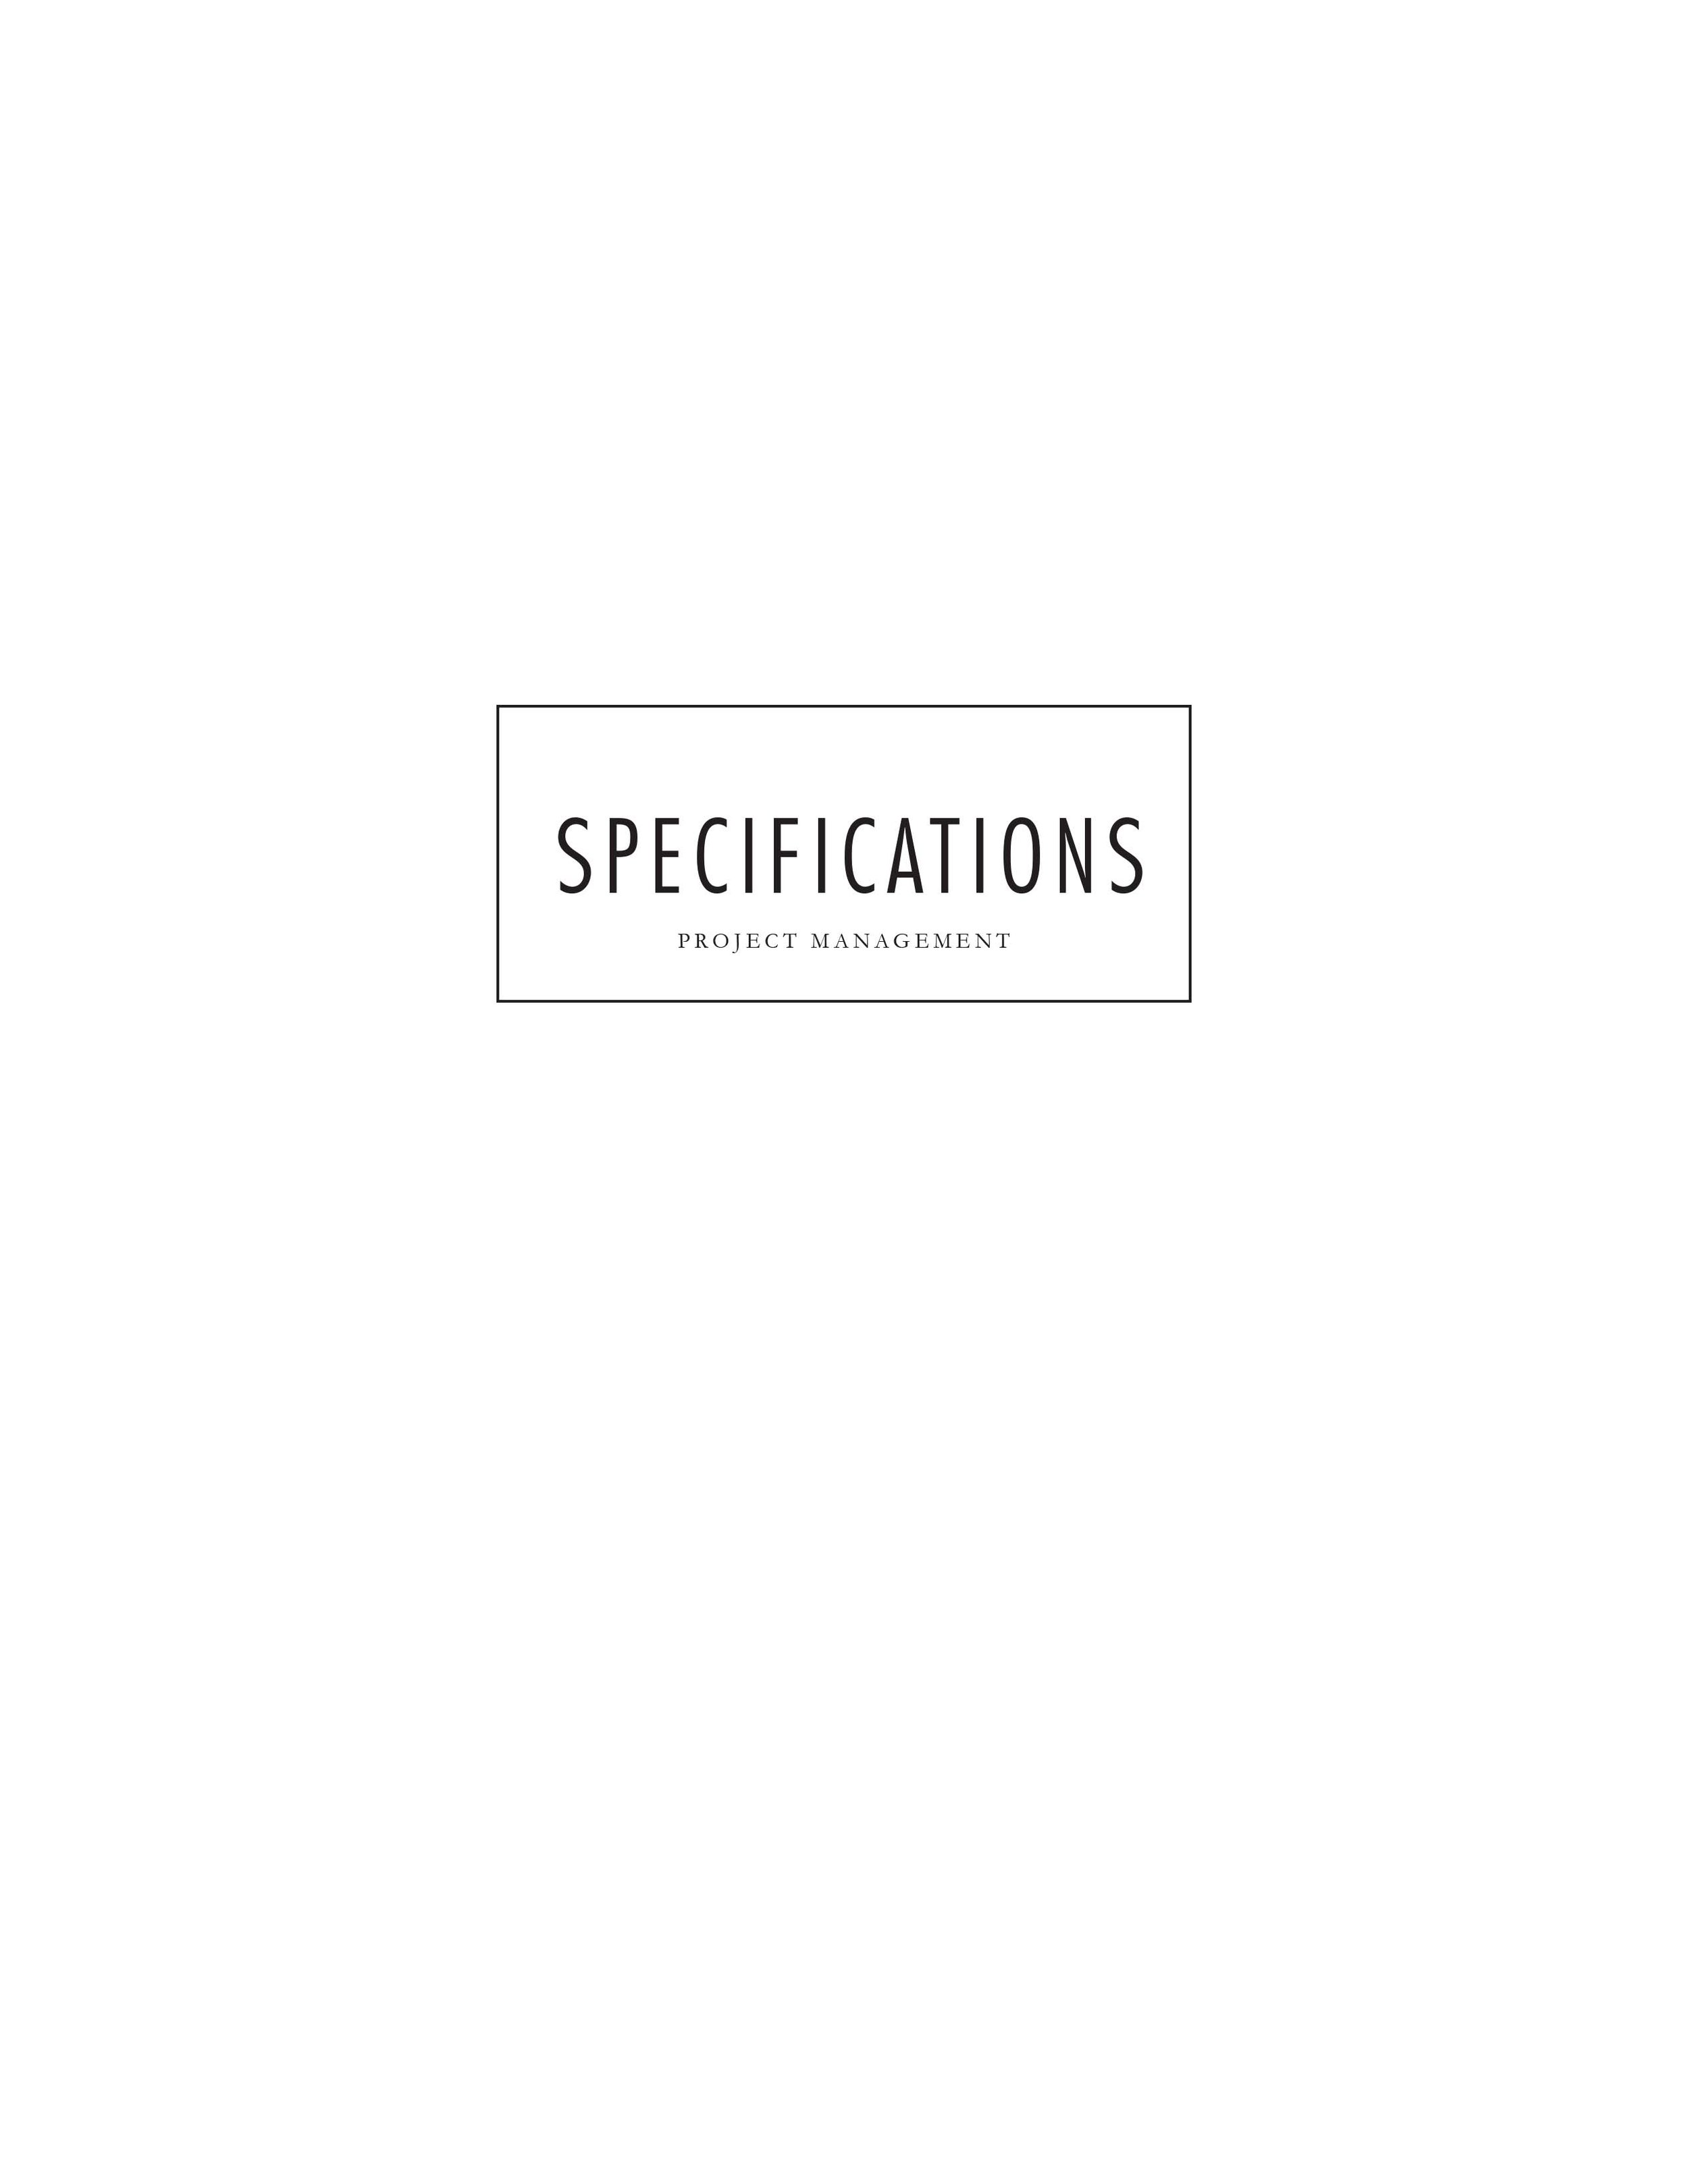 specification-1.jpg